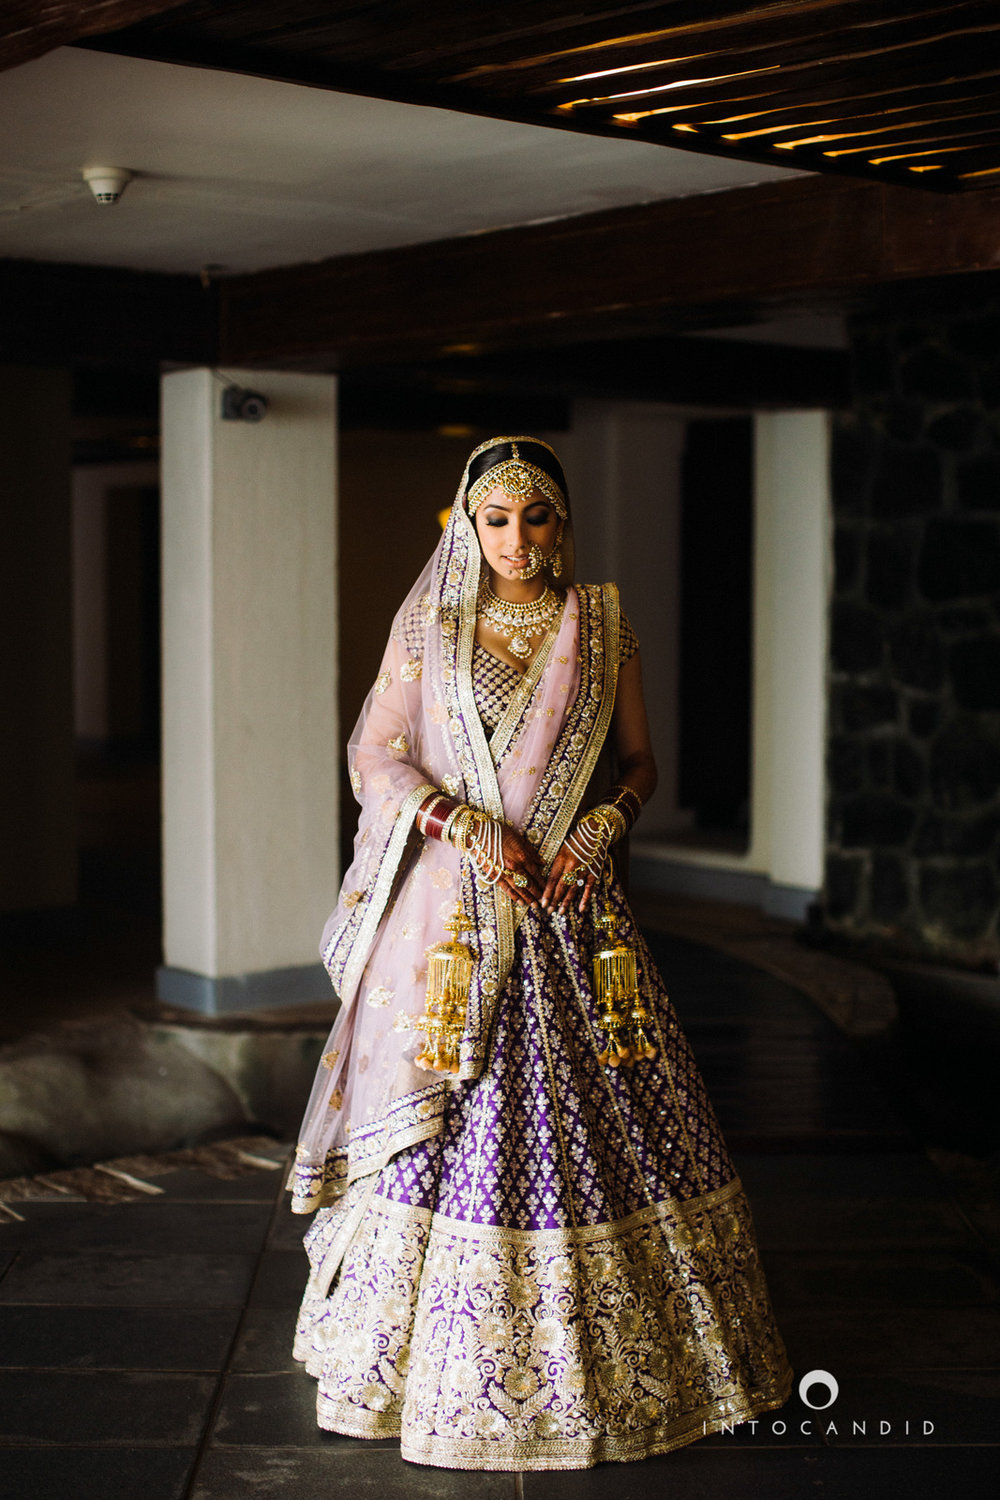 leela-kovalam-wedding-destination-indian-wedding-photography-intocandid-ra-34.jpg